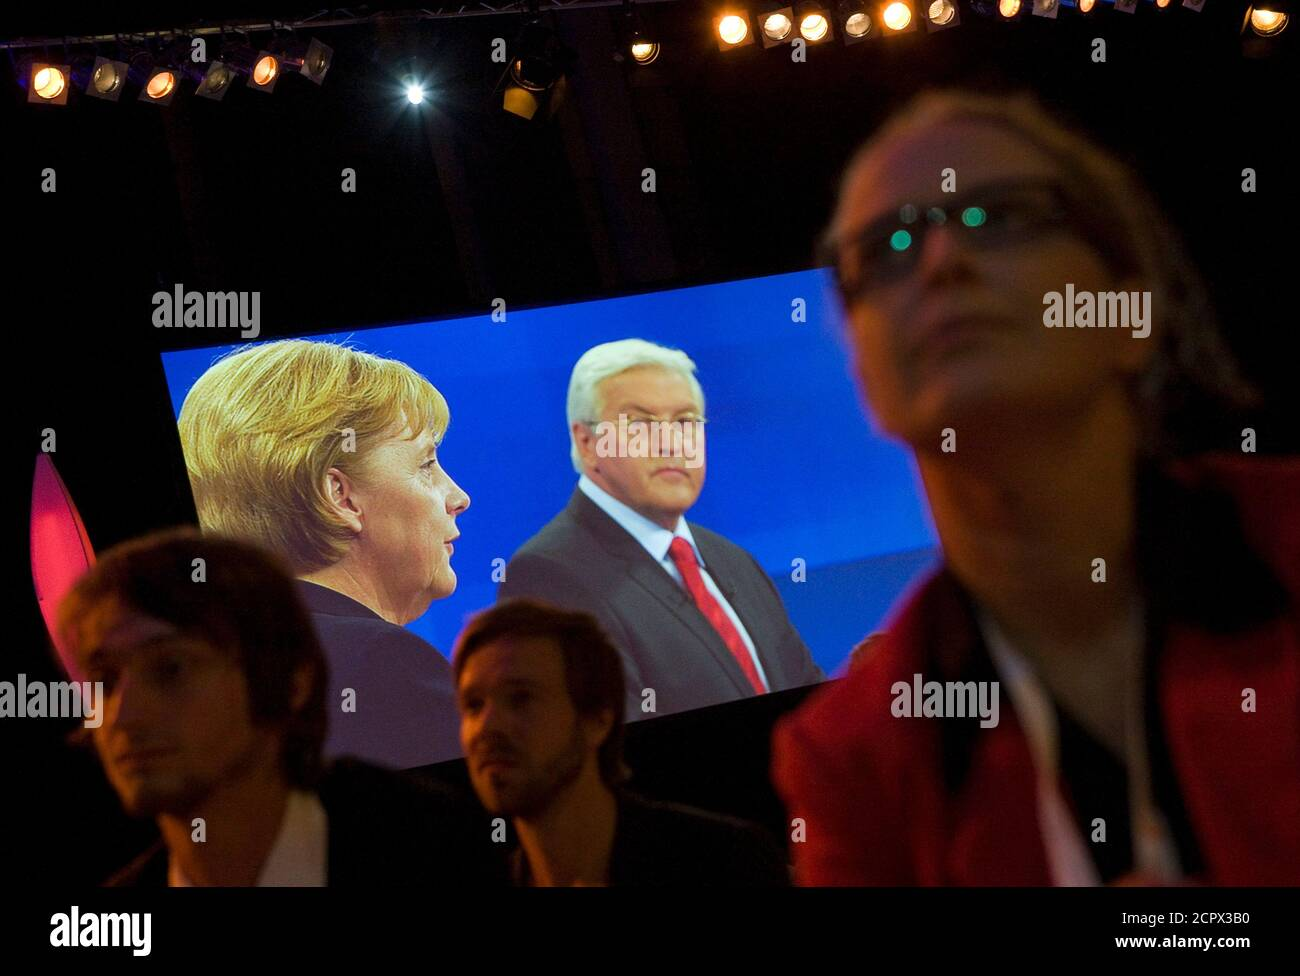 Journalists watch a televised debate between German Chancellor Angela Merkel (L), leader of Germany's Christian Democratic Union (CDU), and Frank-Walter Steinmeier, German Foreign Minister and candidate for chancellor of the Social Democratic Party (SPD), in Berlin September 13, 2009.  REUTERS/Thomas Peter  (GERMANY POLITICS ELECTIONS) Stock Photo